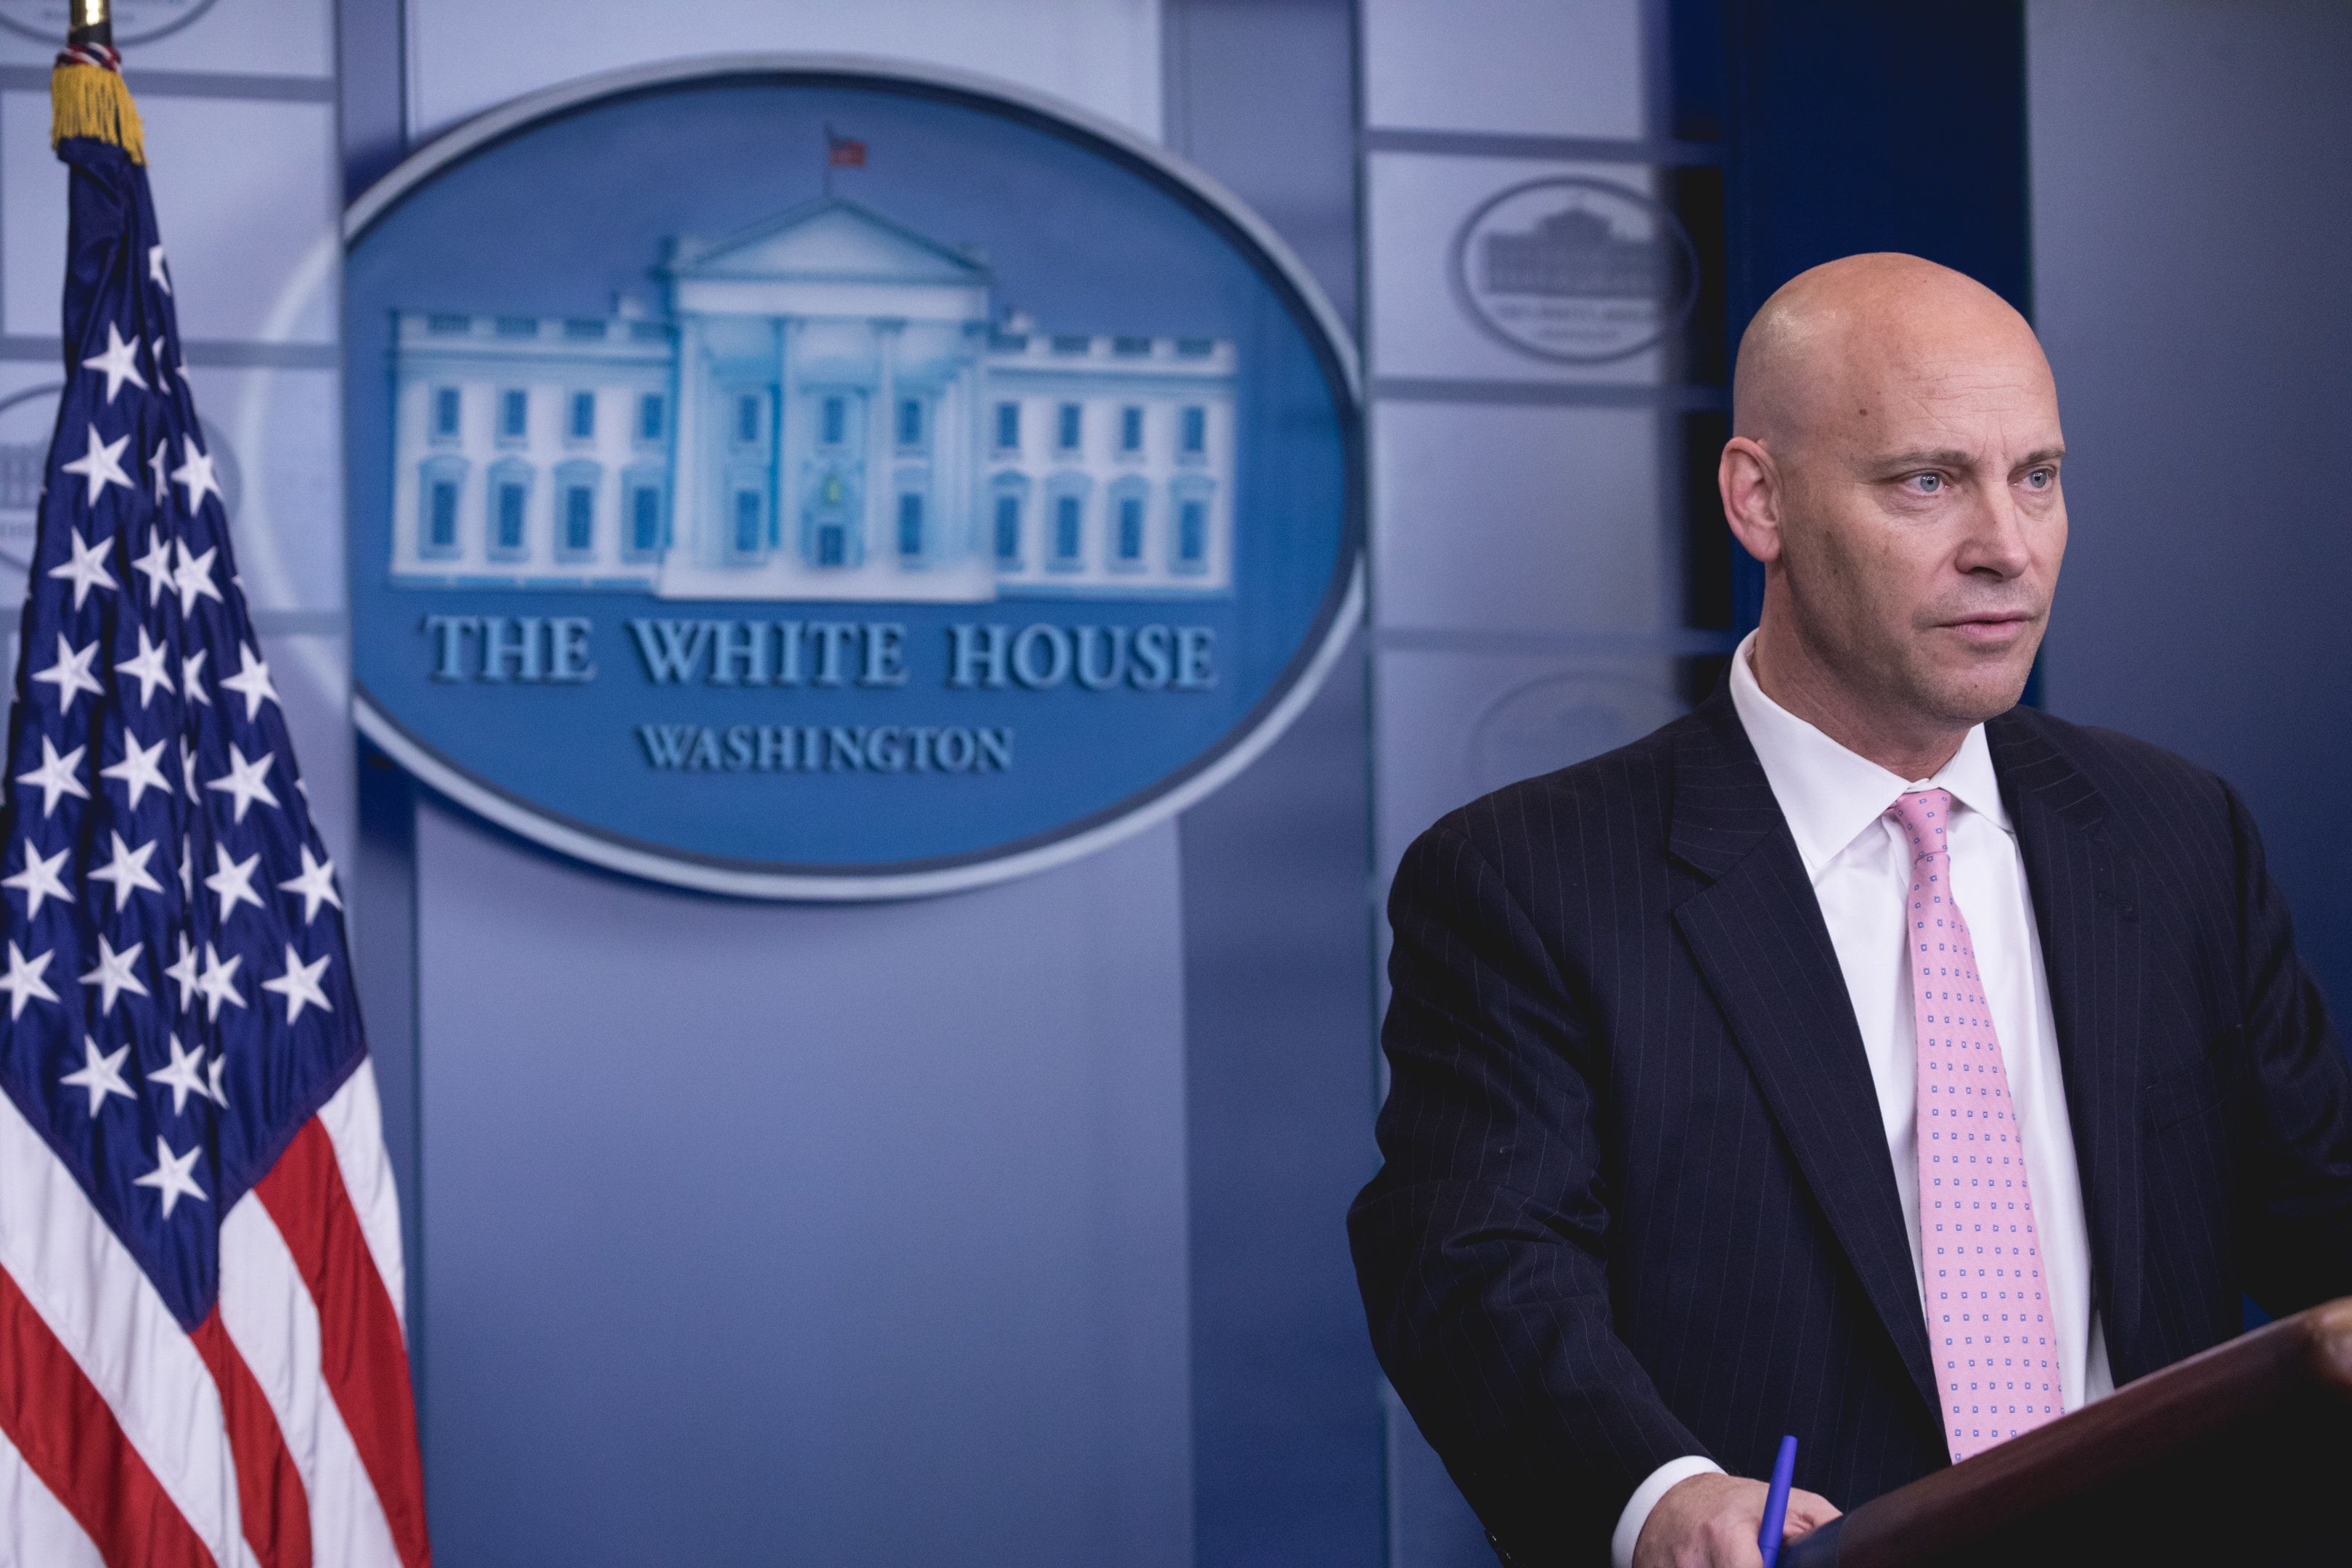 Legislative Affairs Director Marc Short speaks during a press briefing on the government shutdown, in the James S. Brady Press Briefing Room of the White House in Washington, D.C., on Saturday, January 20, 2018. (Photo by Cheriss May) (Photo by Cheriss May/NurPhoto via Getty Images)